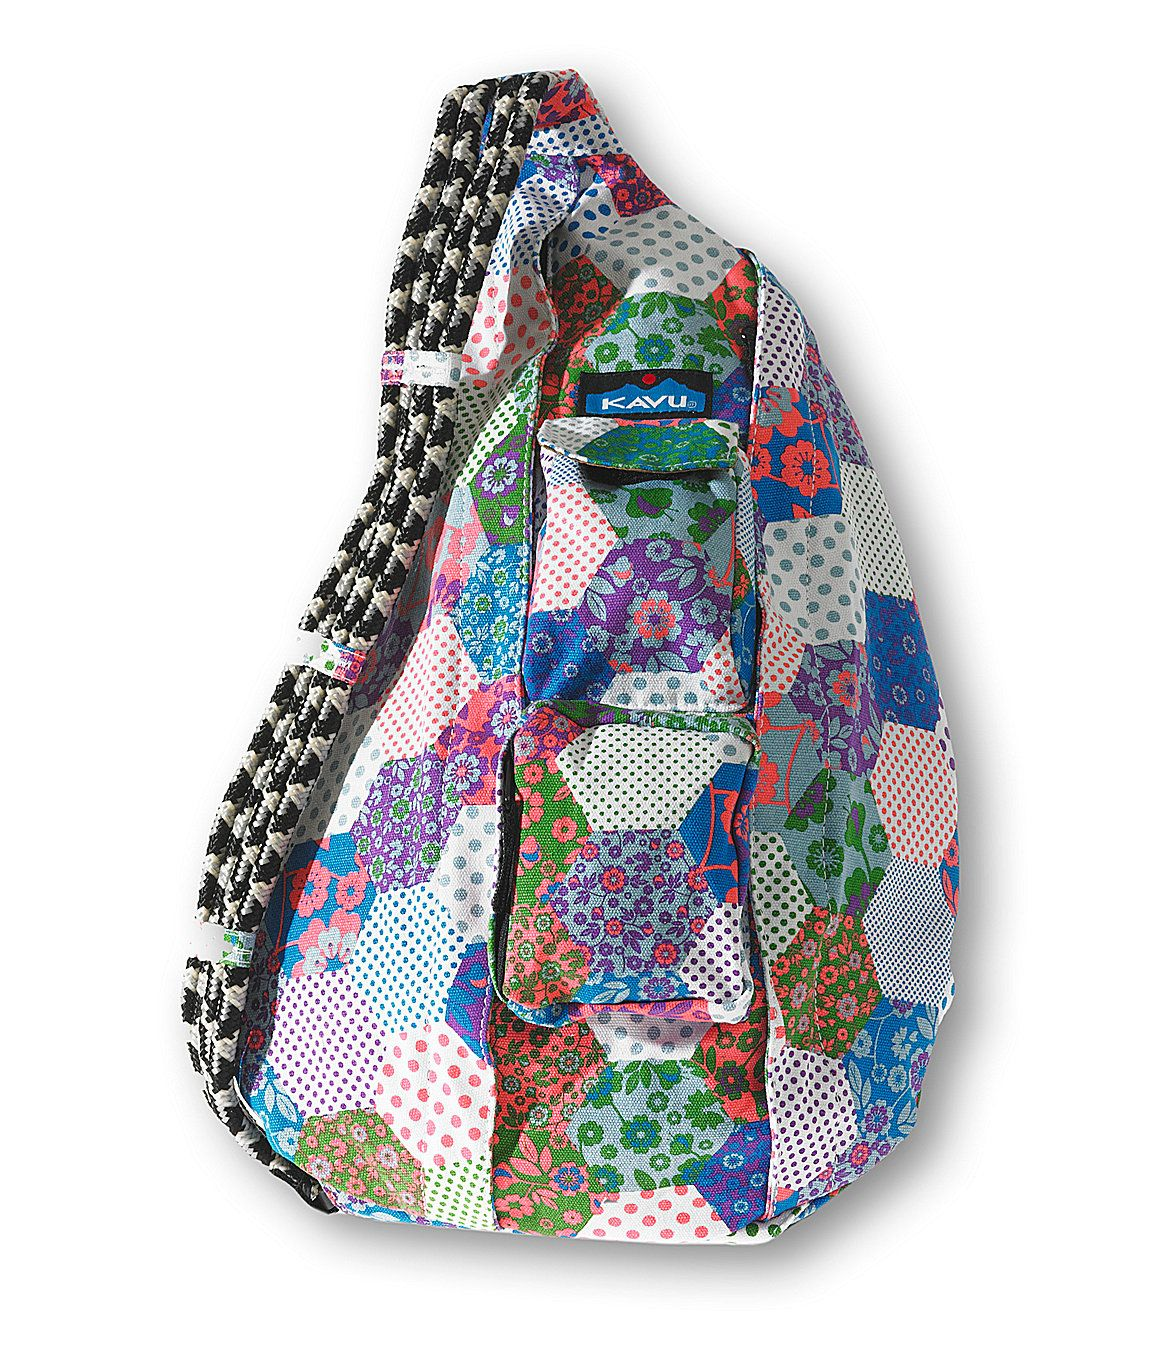 Kavu Rope Bag Messenger Ok So I Tried Tagging But Pinned This For My Mom Jennifer Carlton She Makes Stuff With Little Hexagons Like All The